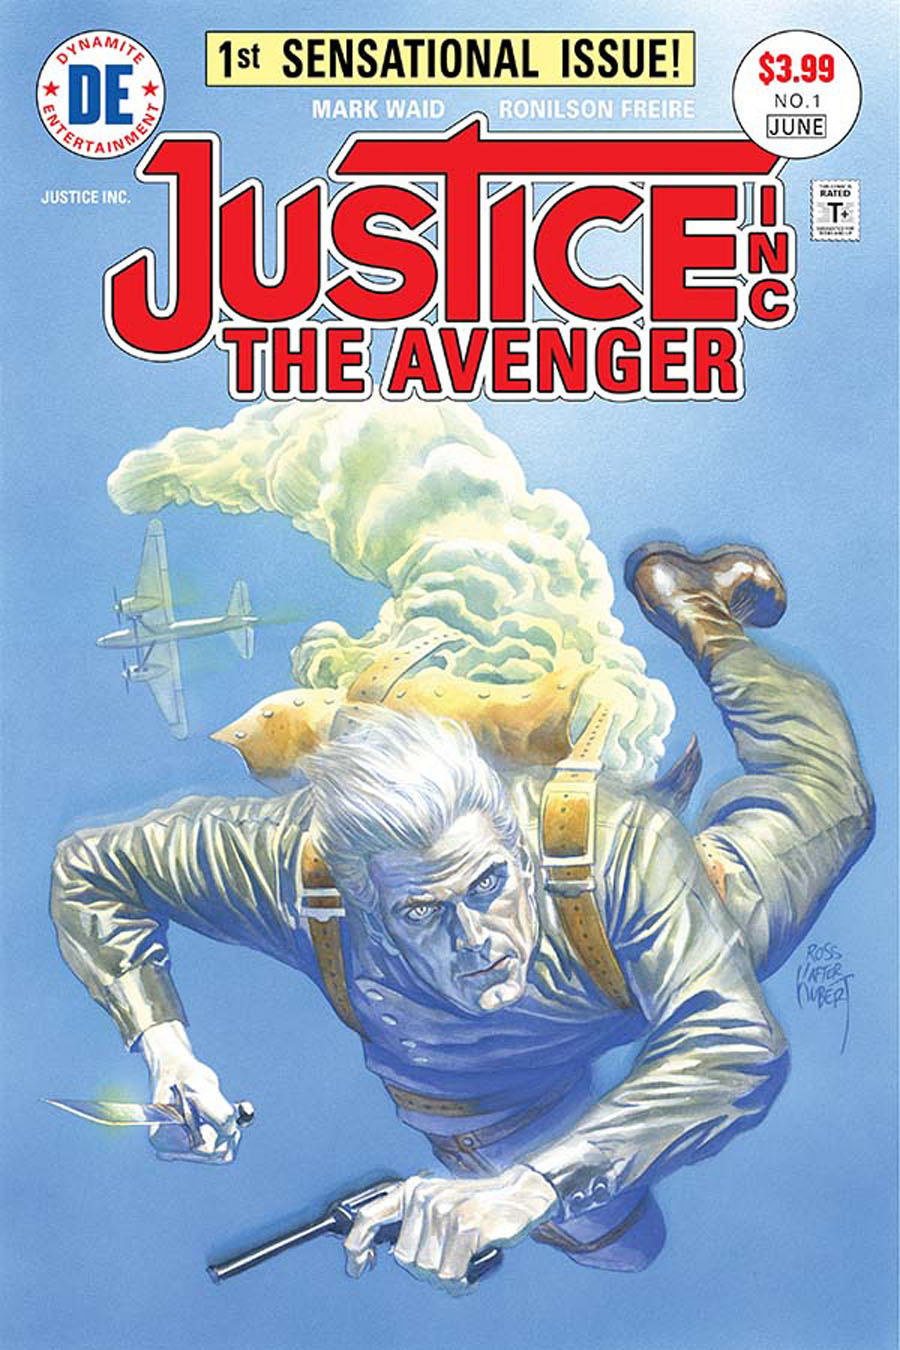 Justice Inc The Avenger #1 Cover A Regular Alex Ross Cover